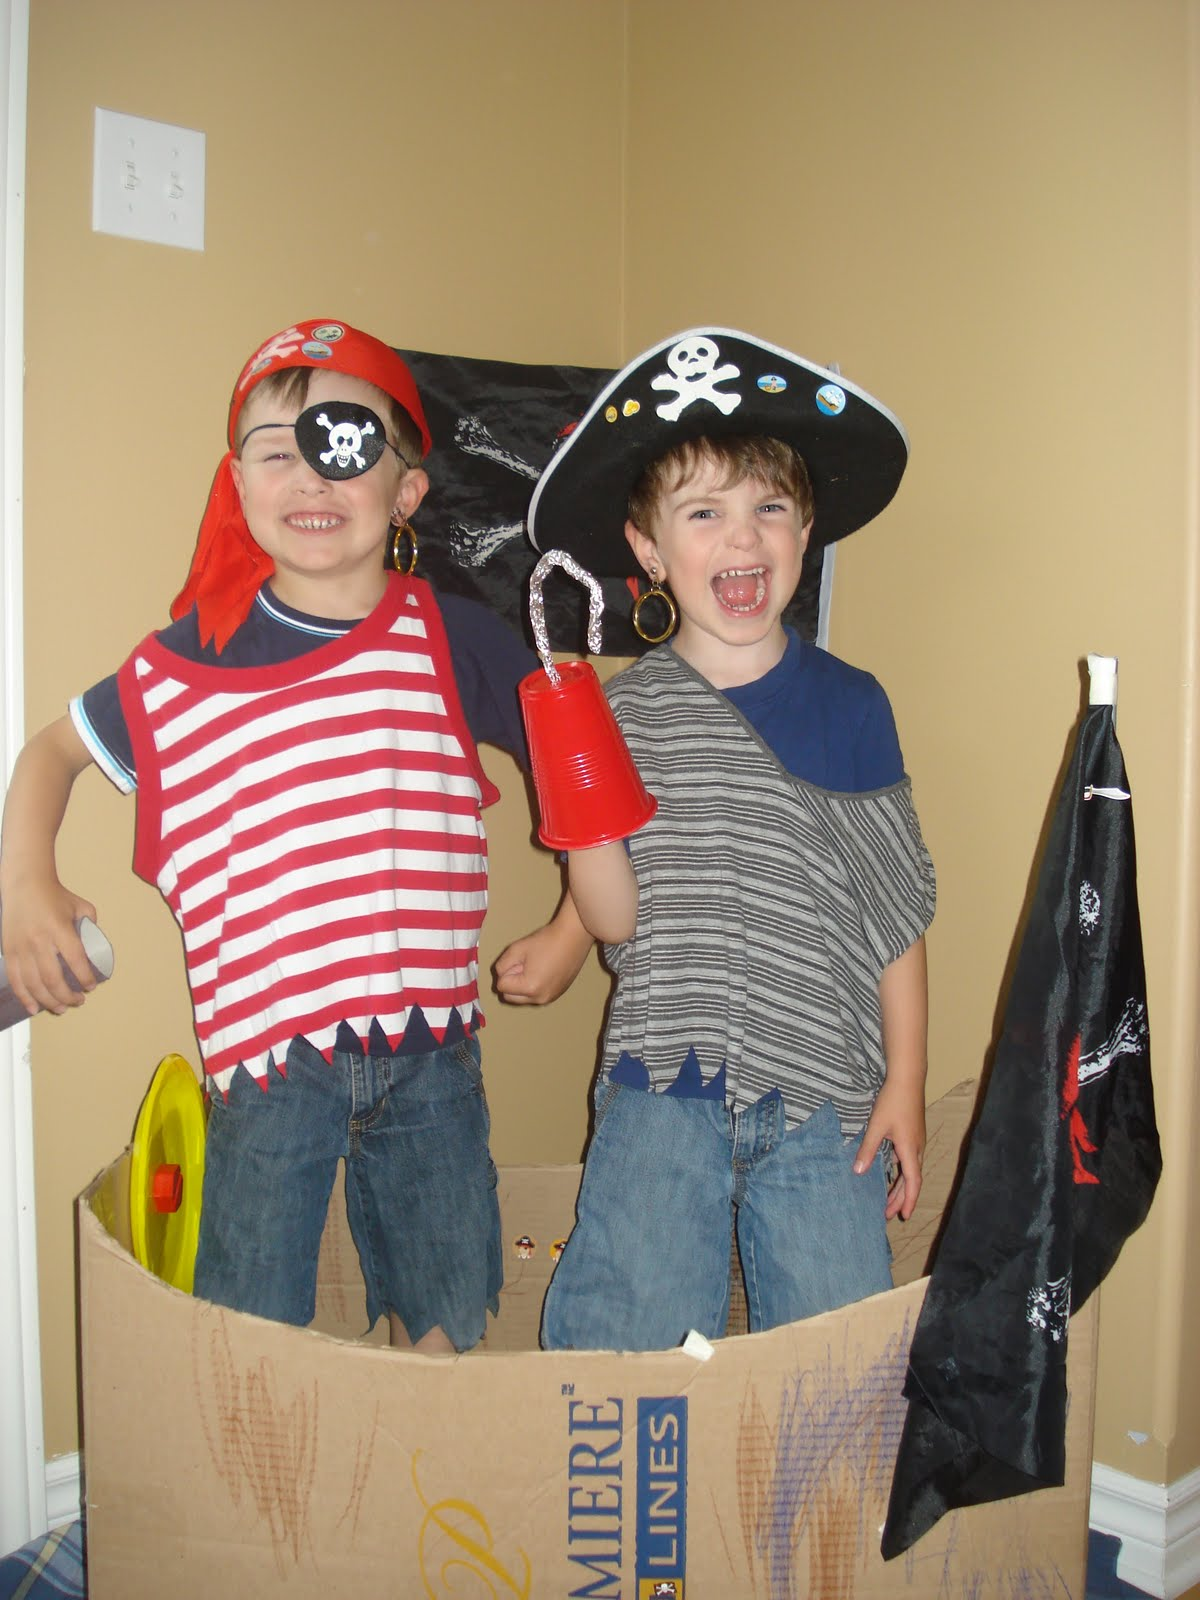 Homemade pirate costume for women 38789 dont forget to share your opinion using the comment form below, height